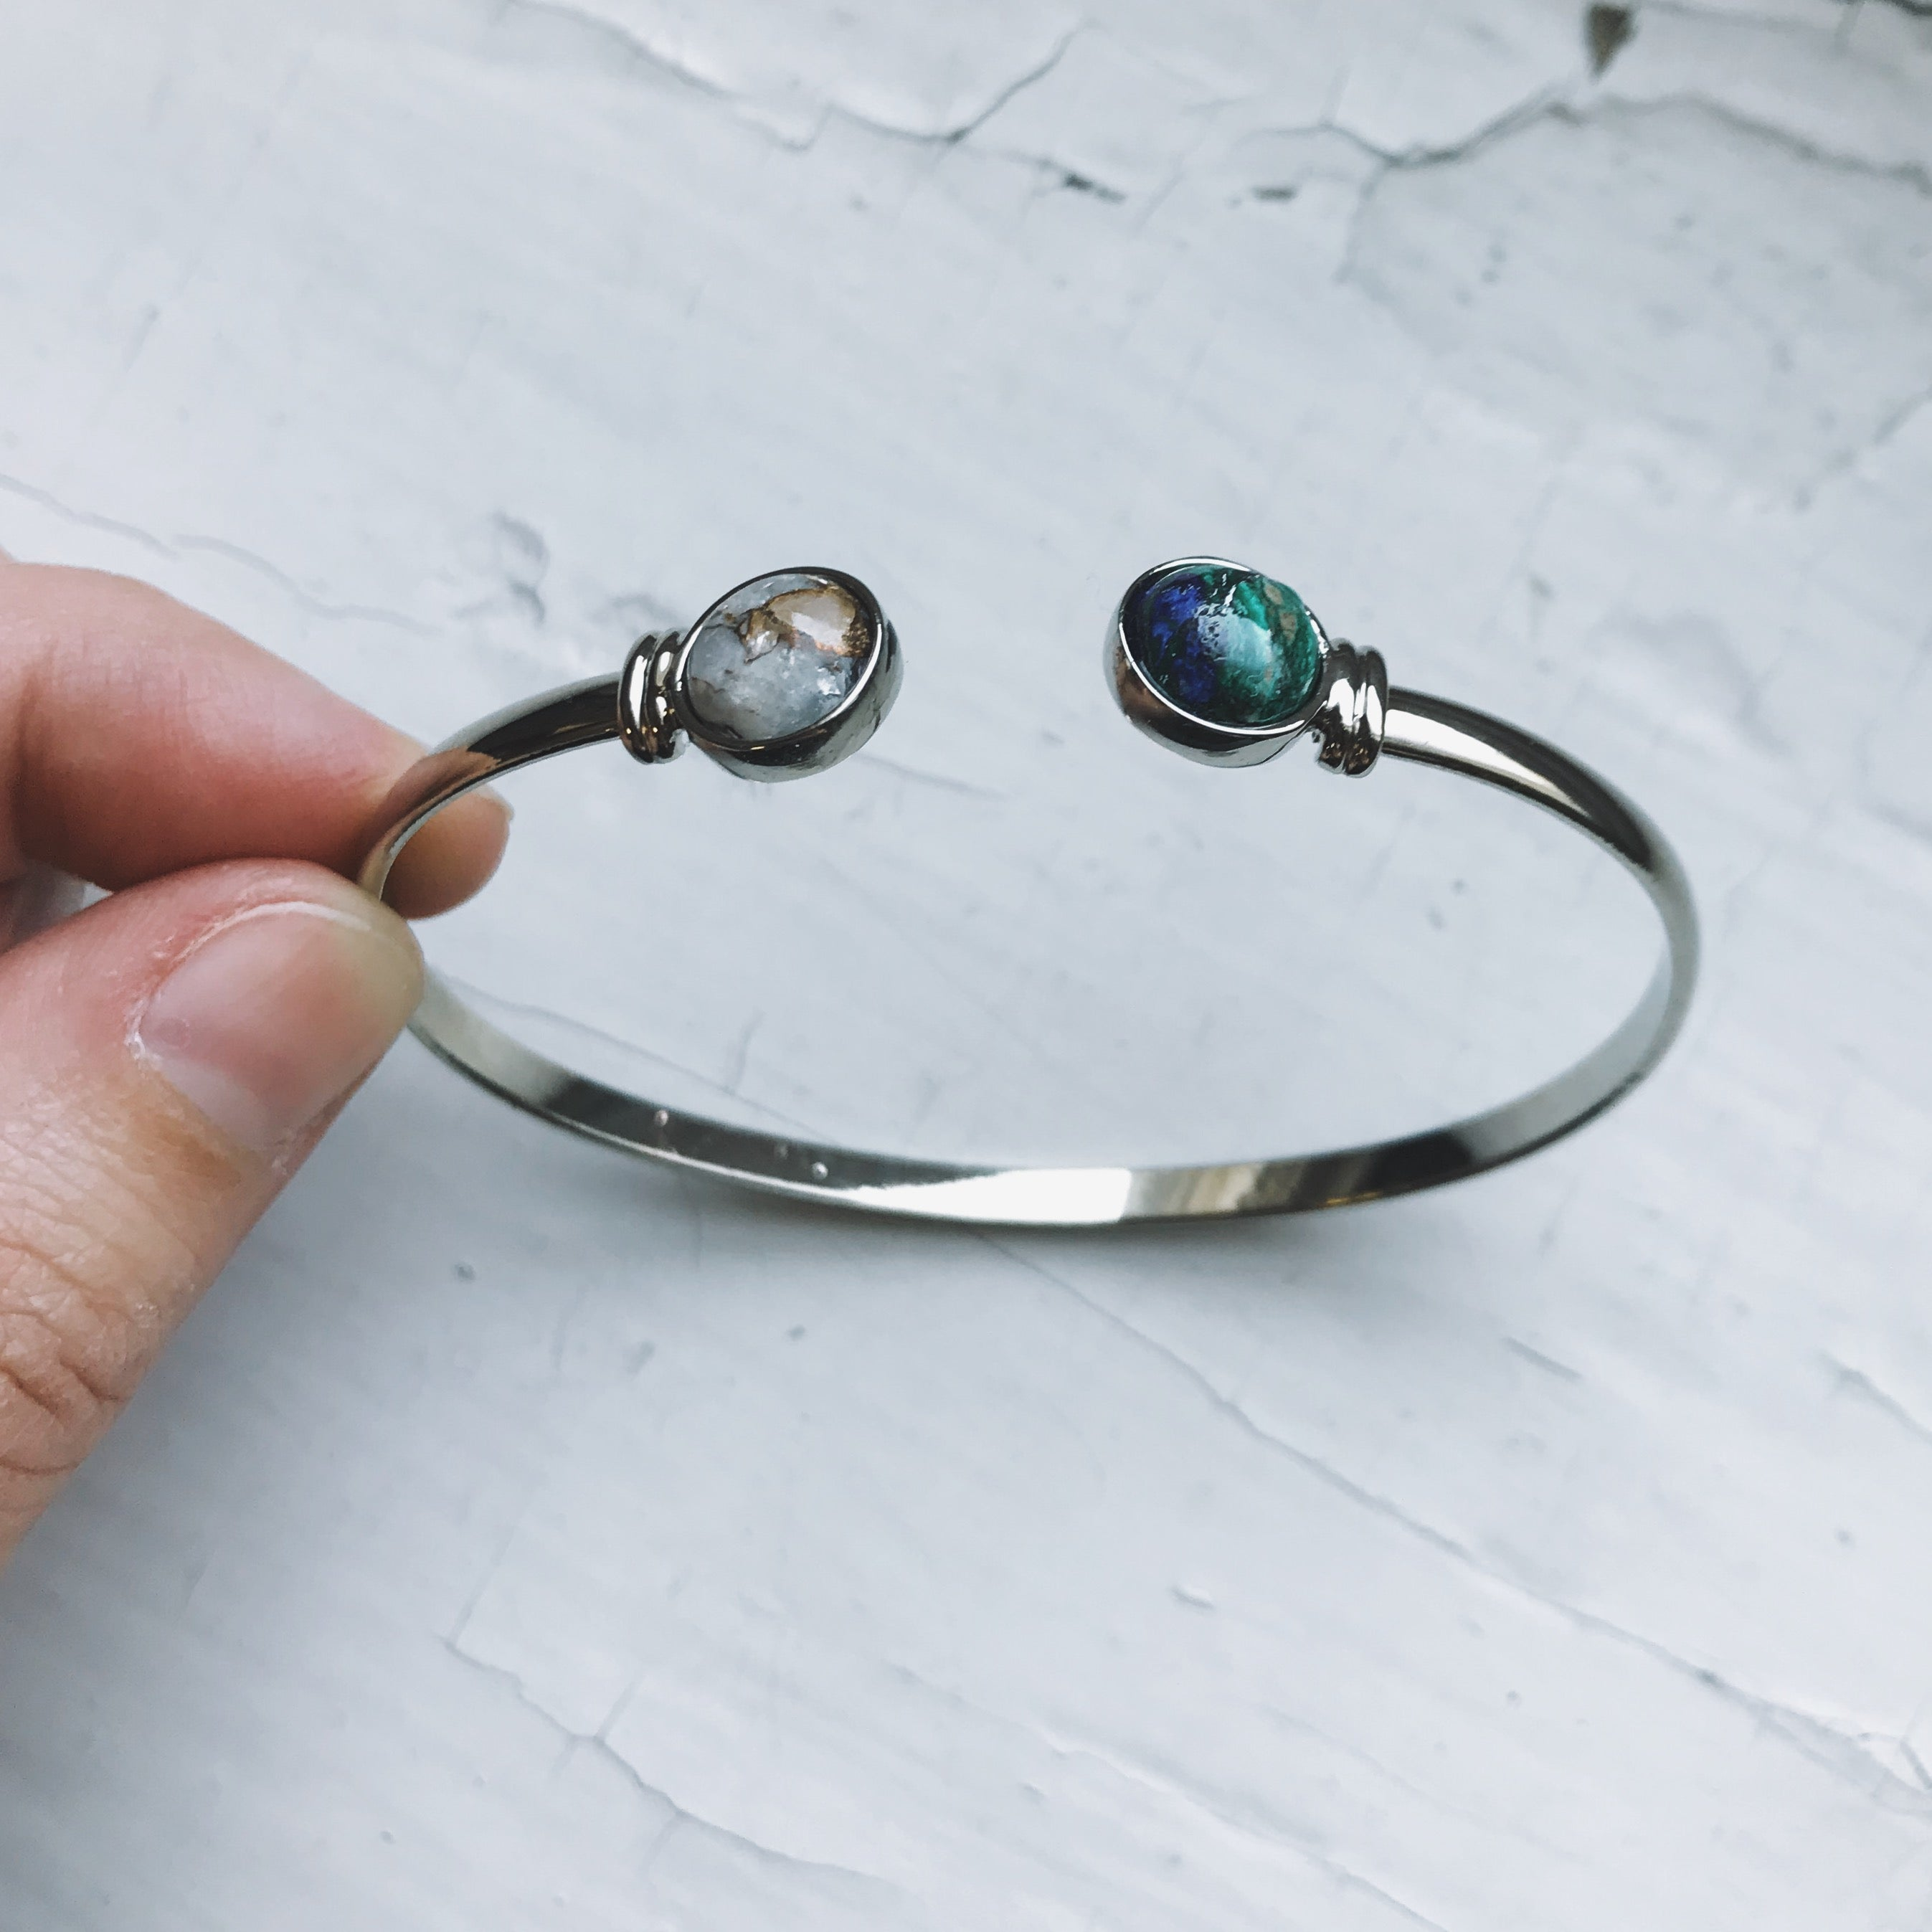 Earth and Moon Bracelet - Cuff Bangle Celestial Jewelry, Galaxy Bracelet - Copper Calcite, Azurite Malachite - Outer Space Planet Jewelry with Natural Stones by Yugen Tribe